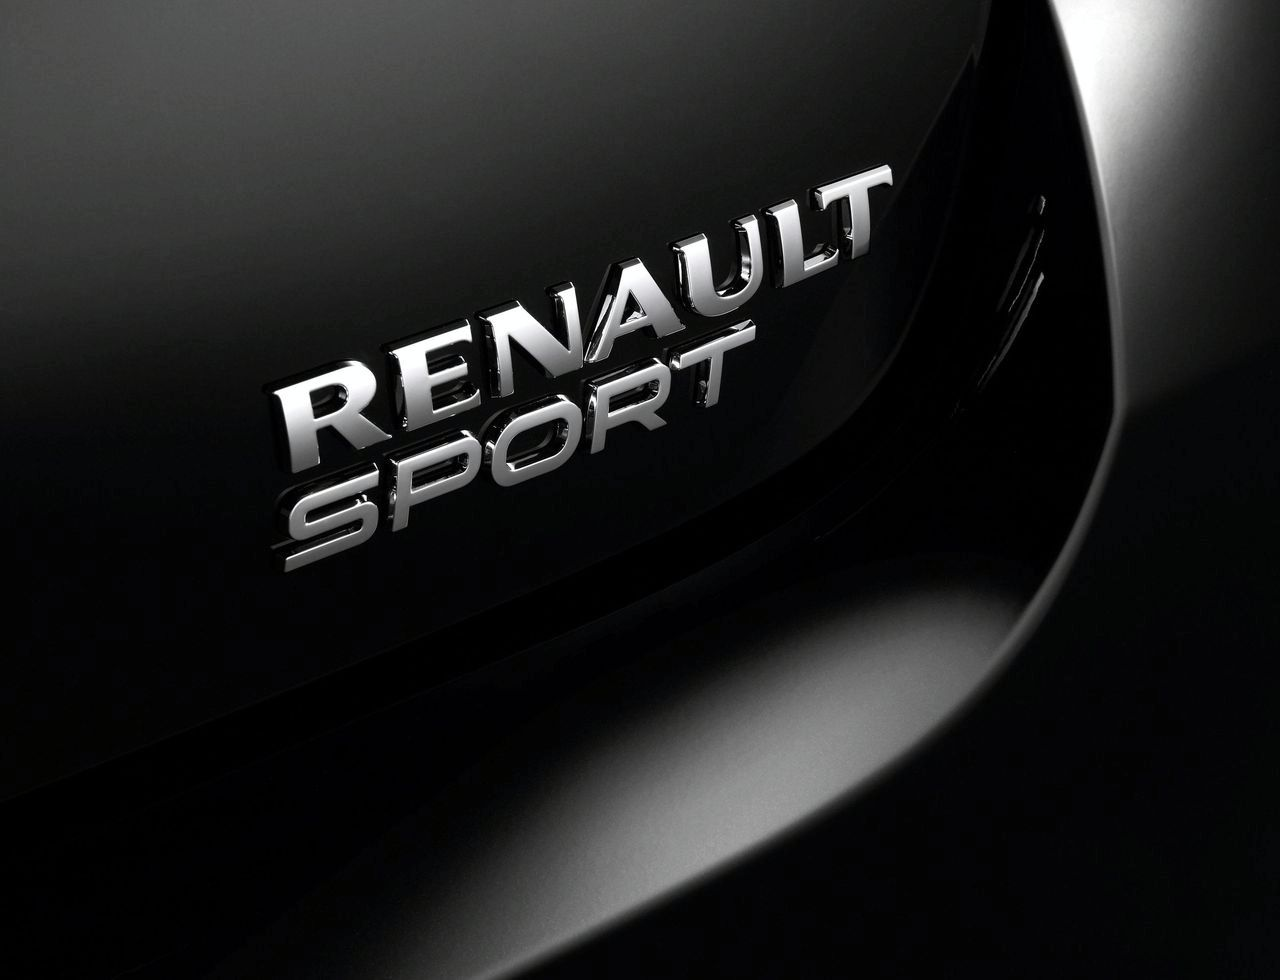 1280x980 - Renault RS Wallpapers 4